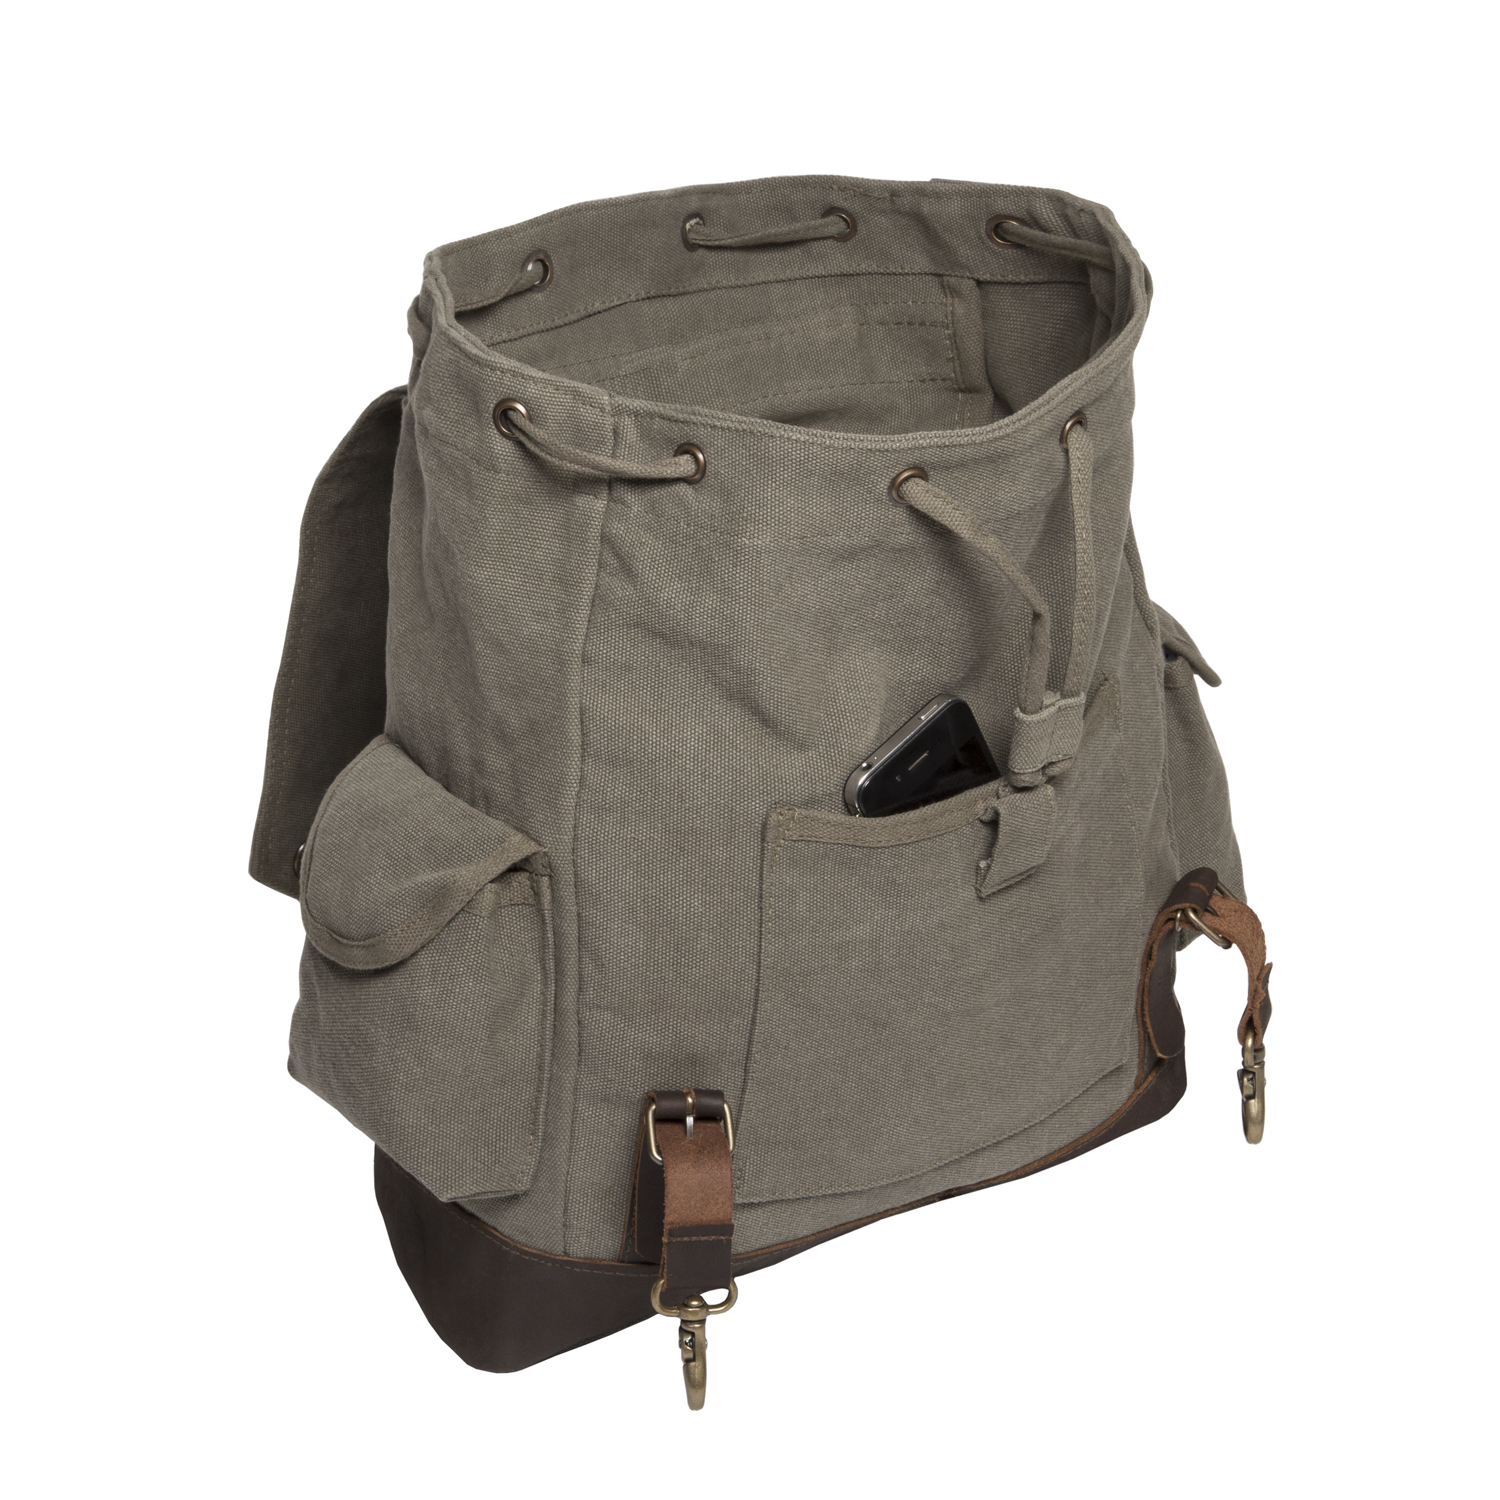 3badda522efa Jeep An American Tradition Vintage Canvas Rucksack Backpack with Leather  Straps - Walmart.com